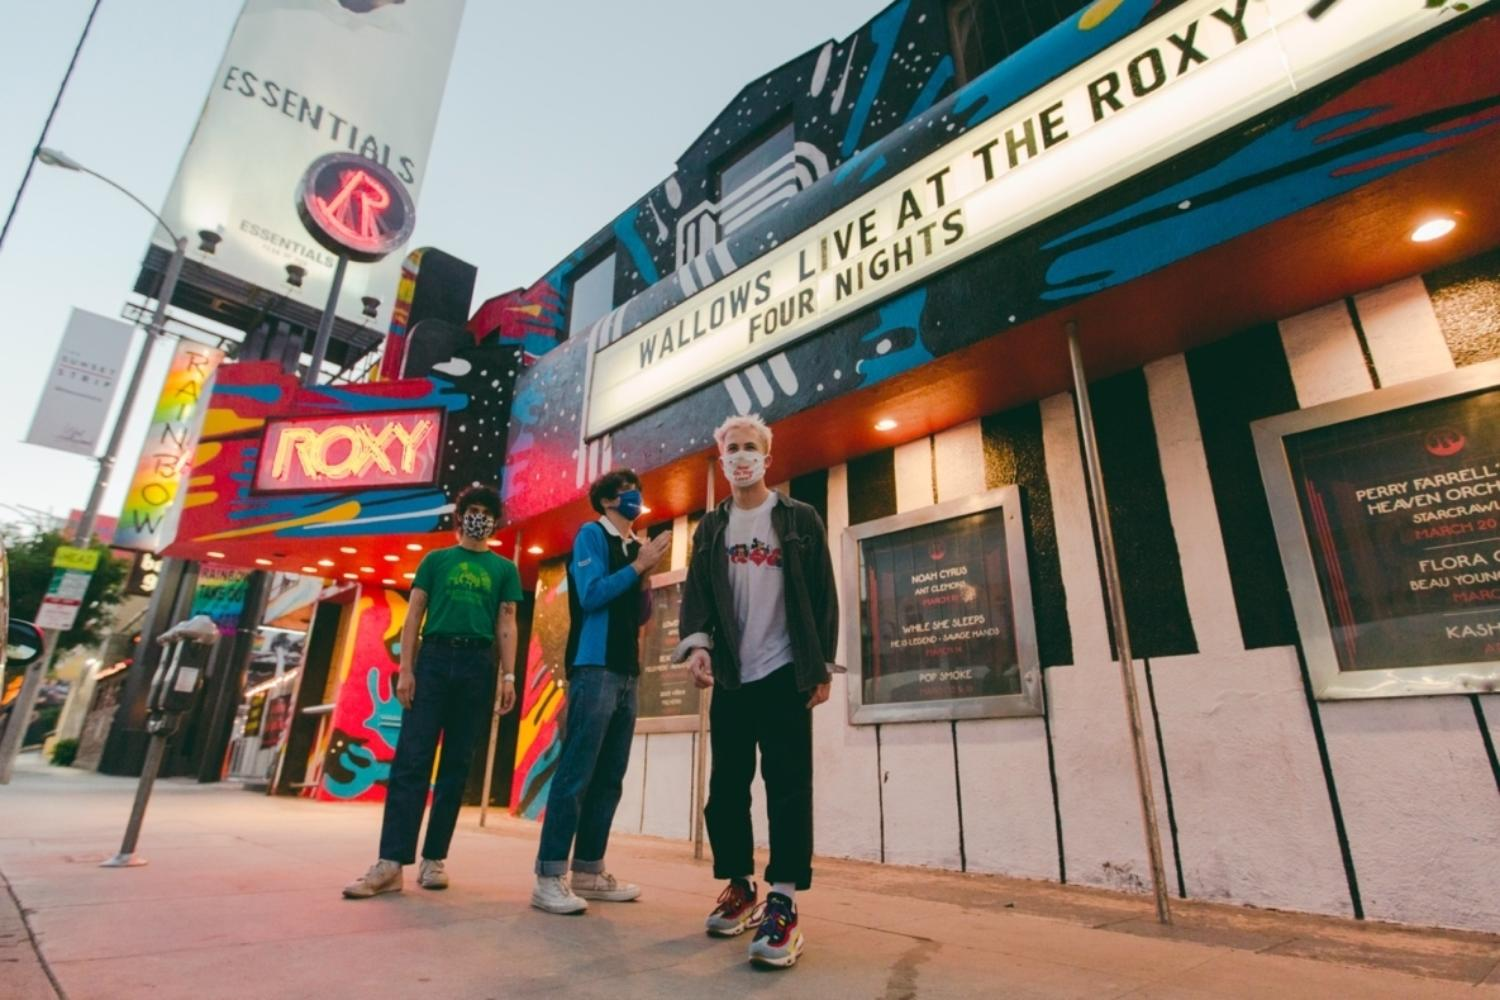 Wallows announce virtual world tour